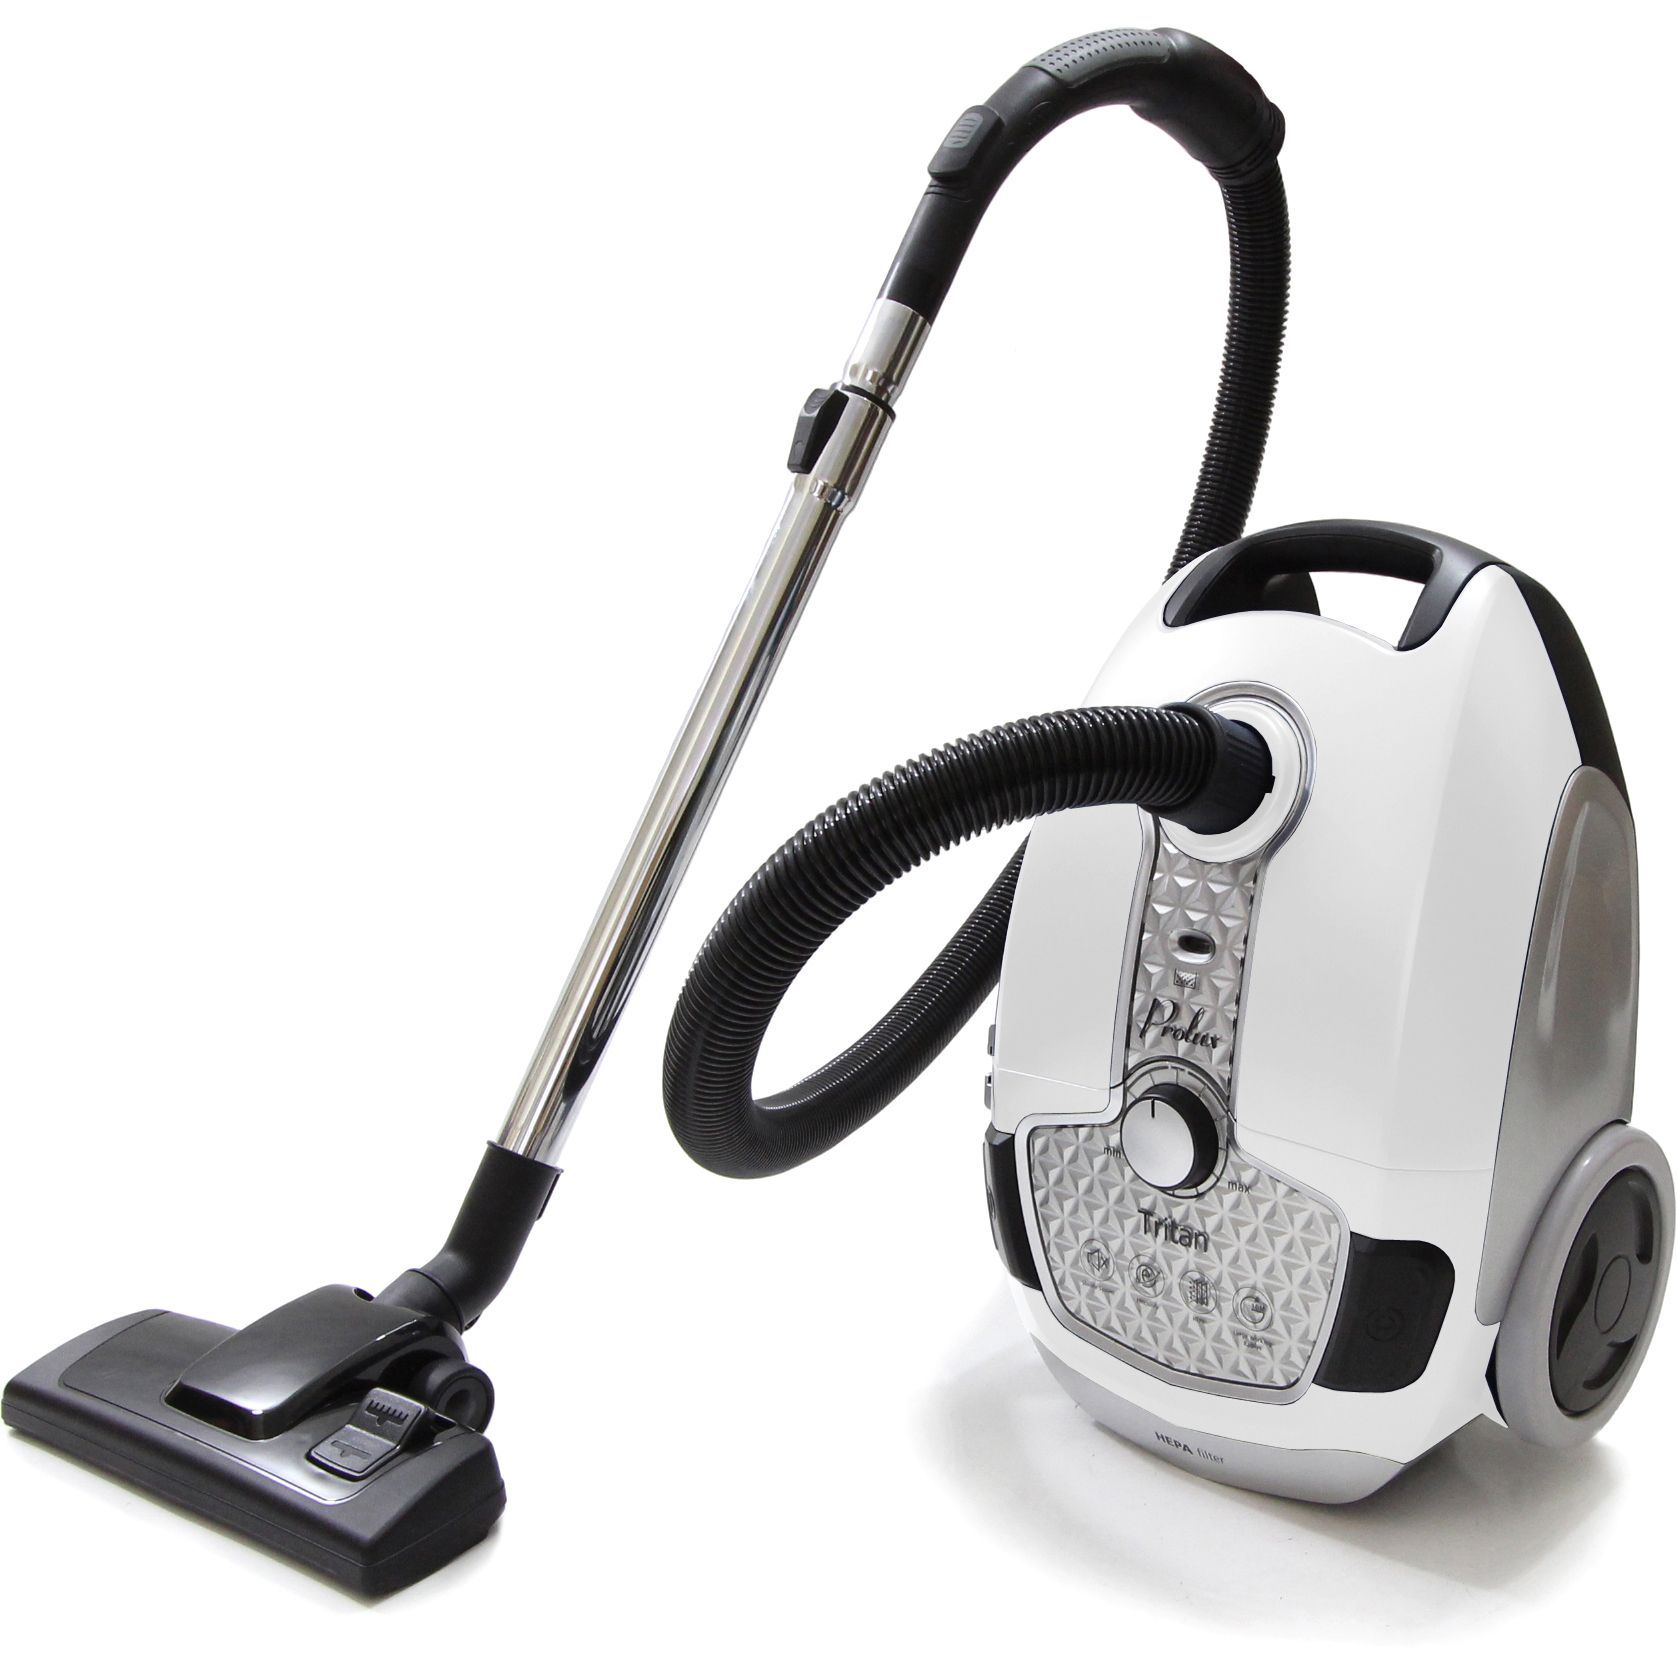 Prolux Tritan Canister Vacuum Hepa Sealed Hard Floor Vacuum With Powerful 12 Amp Motor White Canister Vacuum Vacuums Canisters